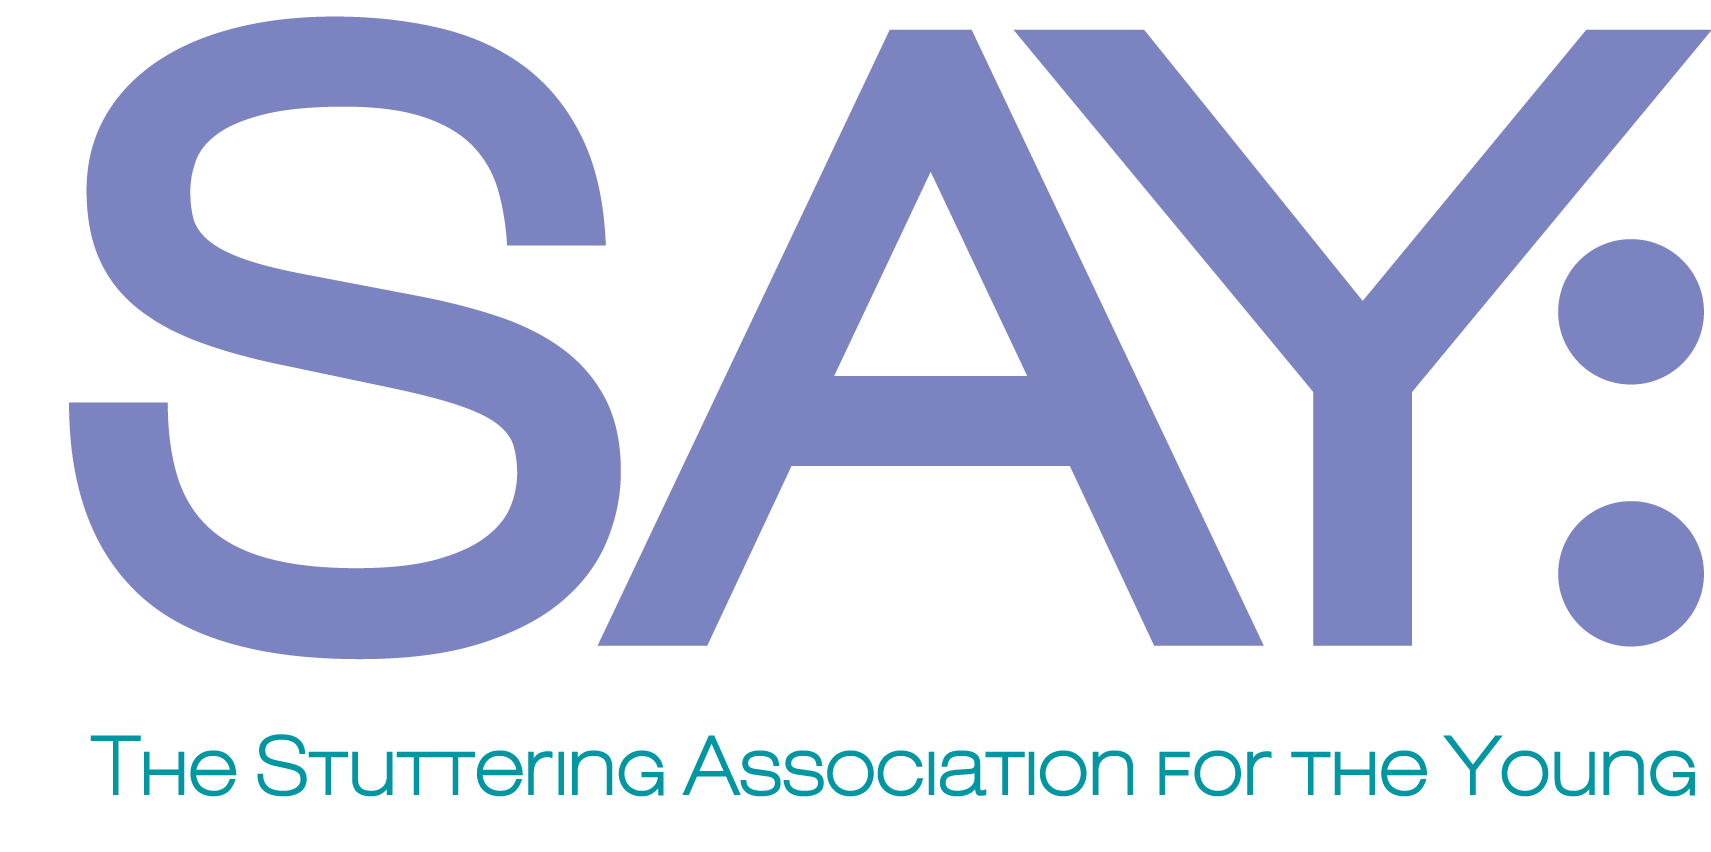 Logo of The Stuttering Association for the Young